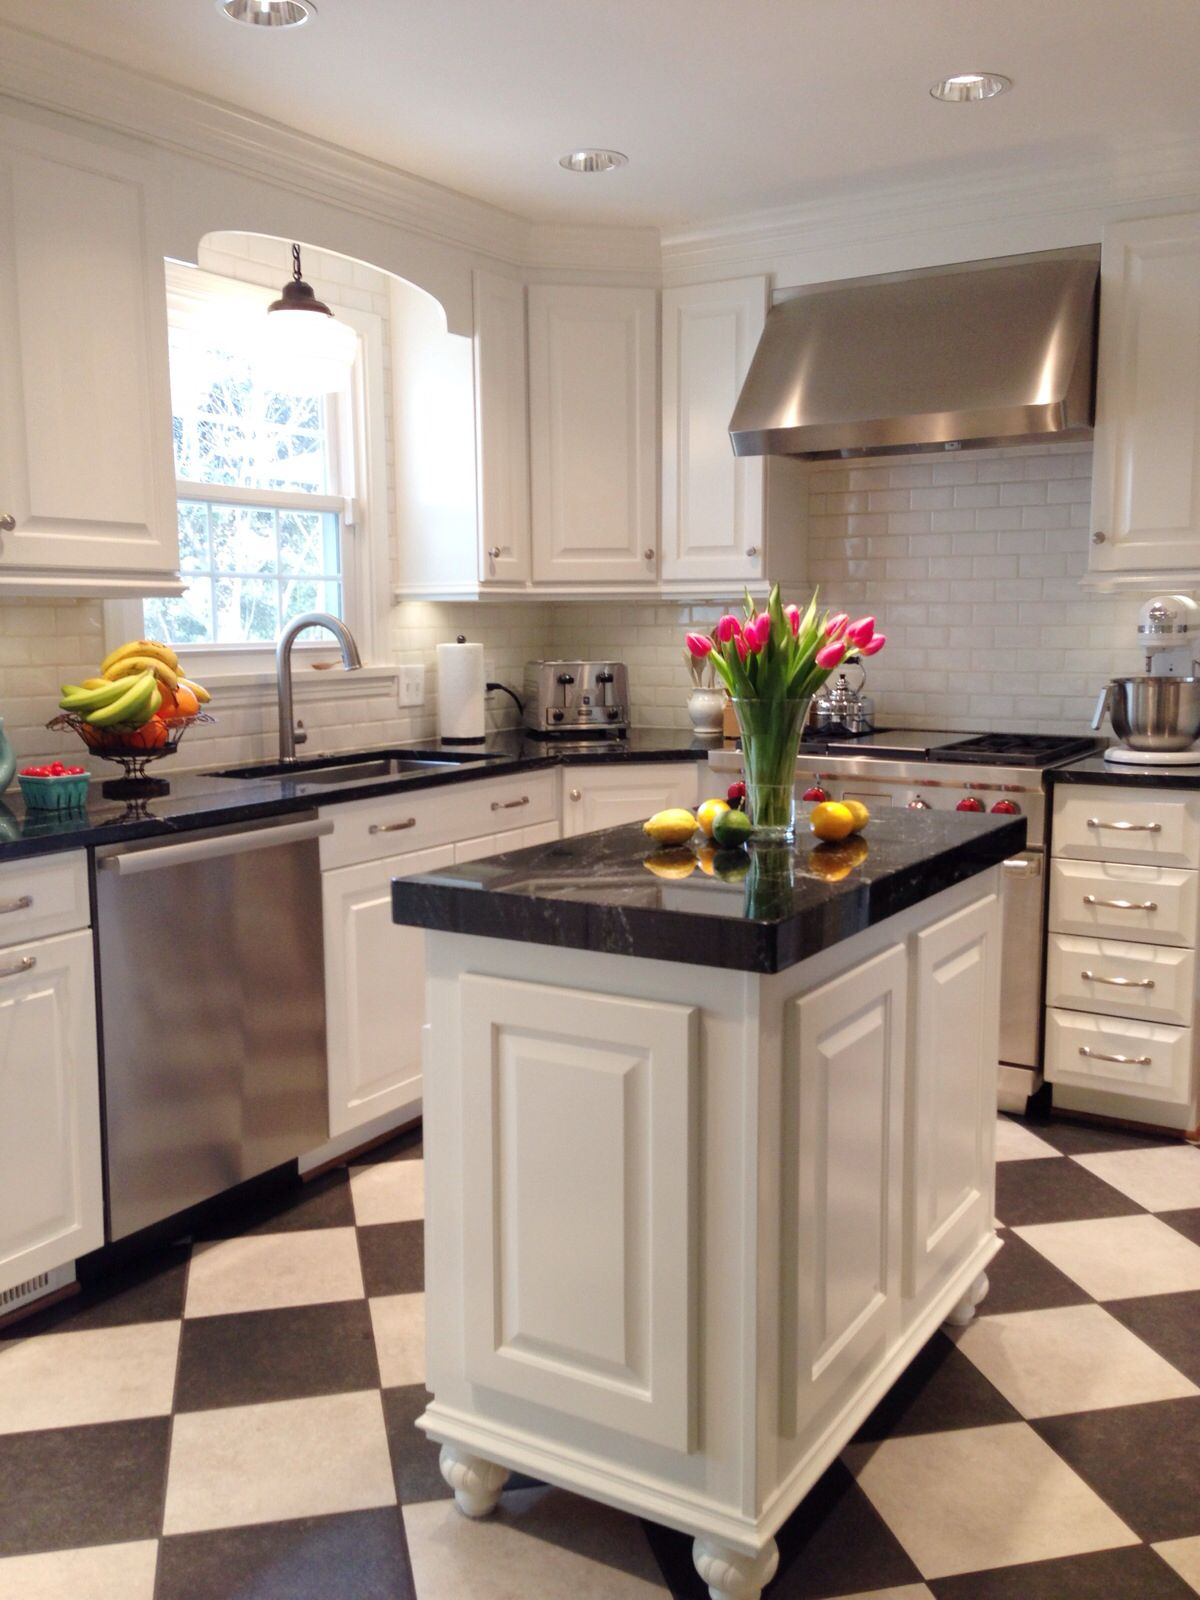 Bm Dove White Kitchen Cabinets Milky Way Granite Counters Light Fixture From Schoolhouse Elec Kitchen Inspirations Kitchen White Kitchen